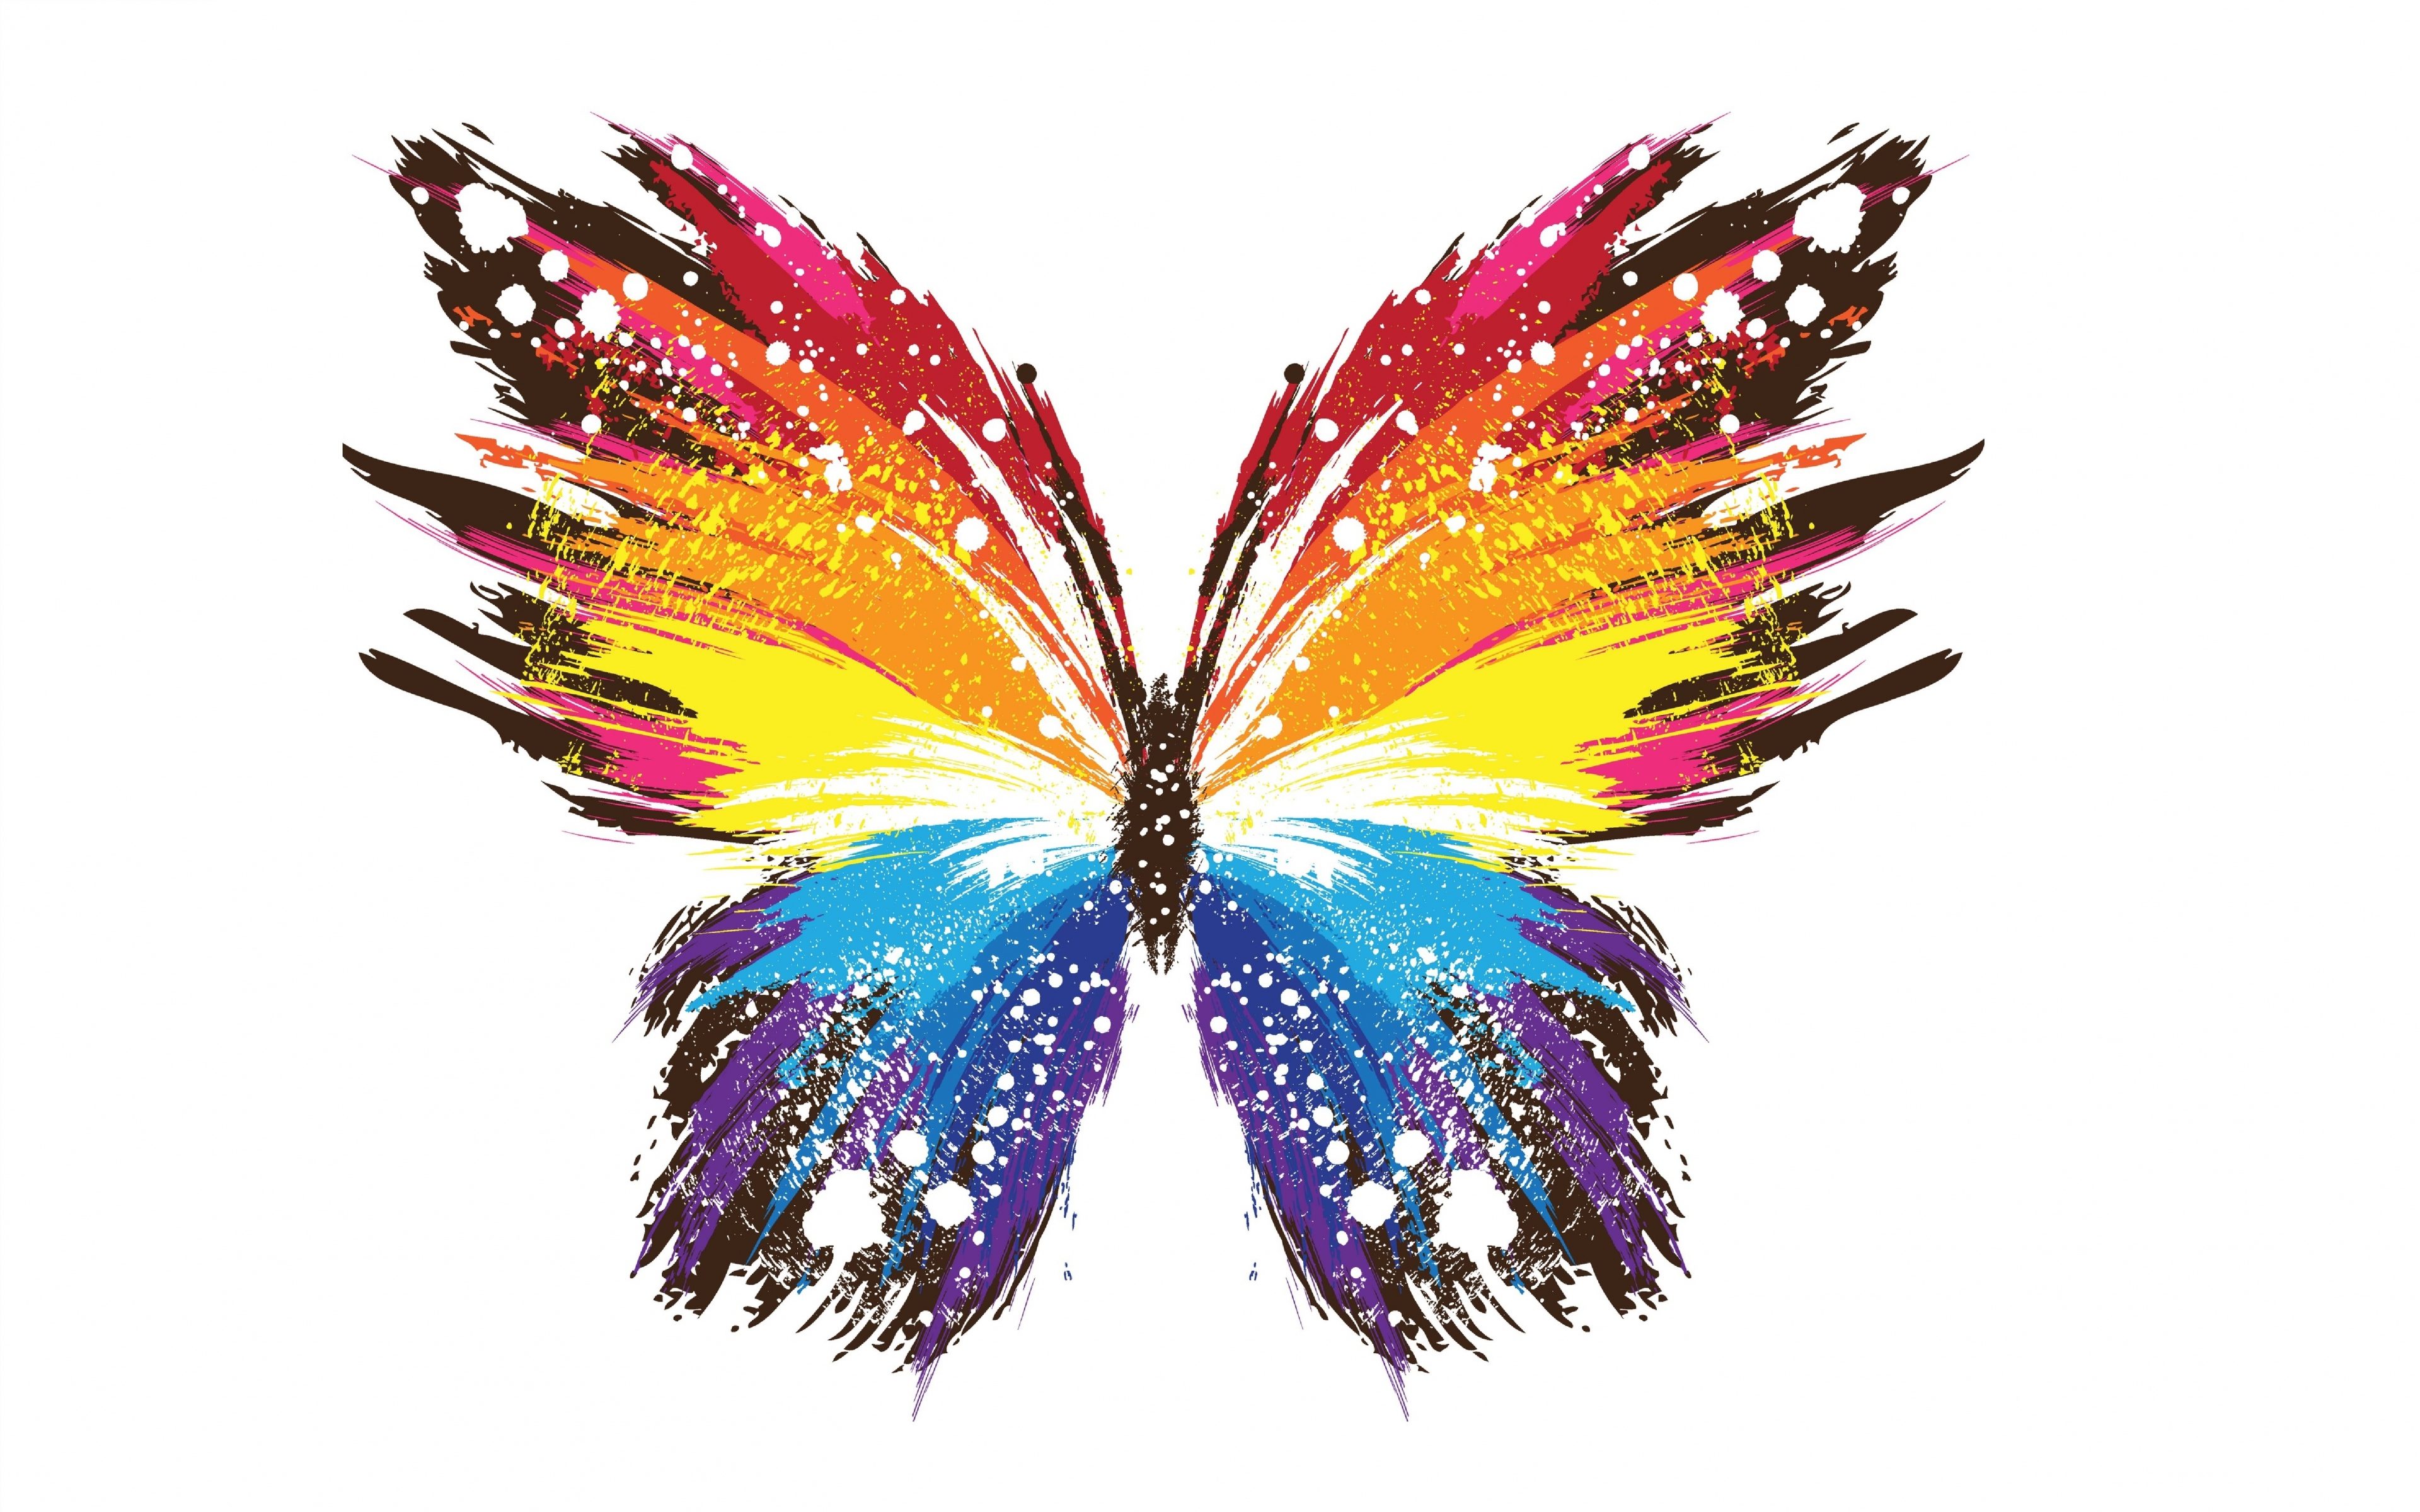 Abstract Butterfly 4k Ultra HD Wallpaper And Background Image